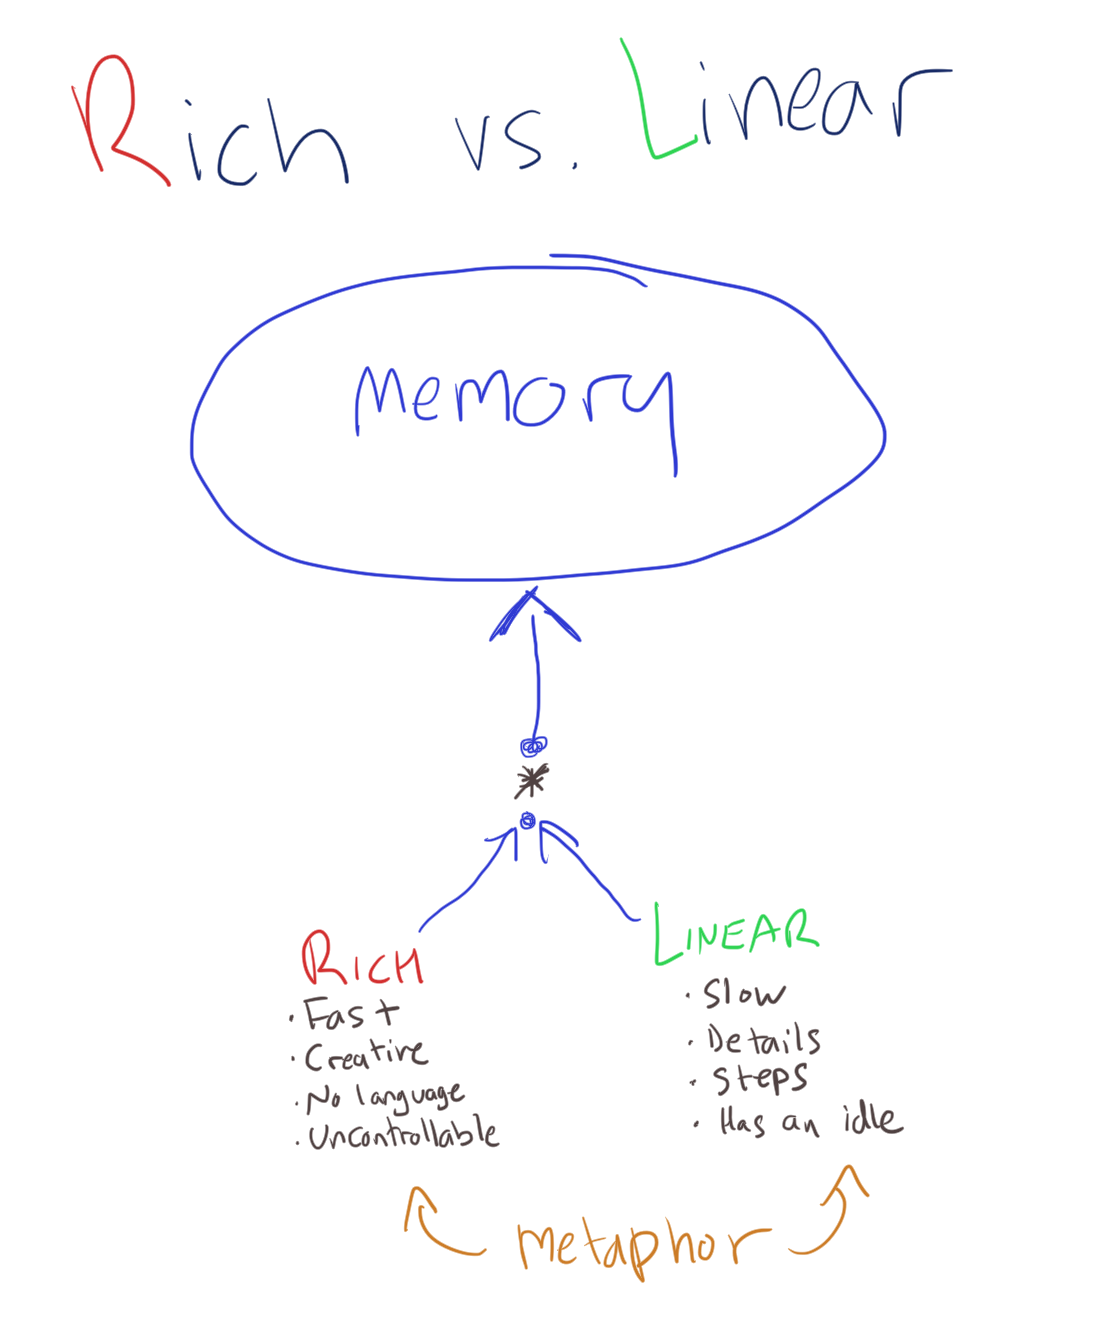 Rich vs. linear thinking